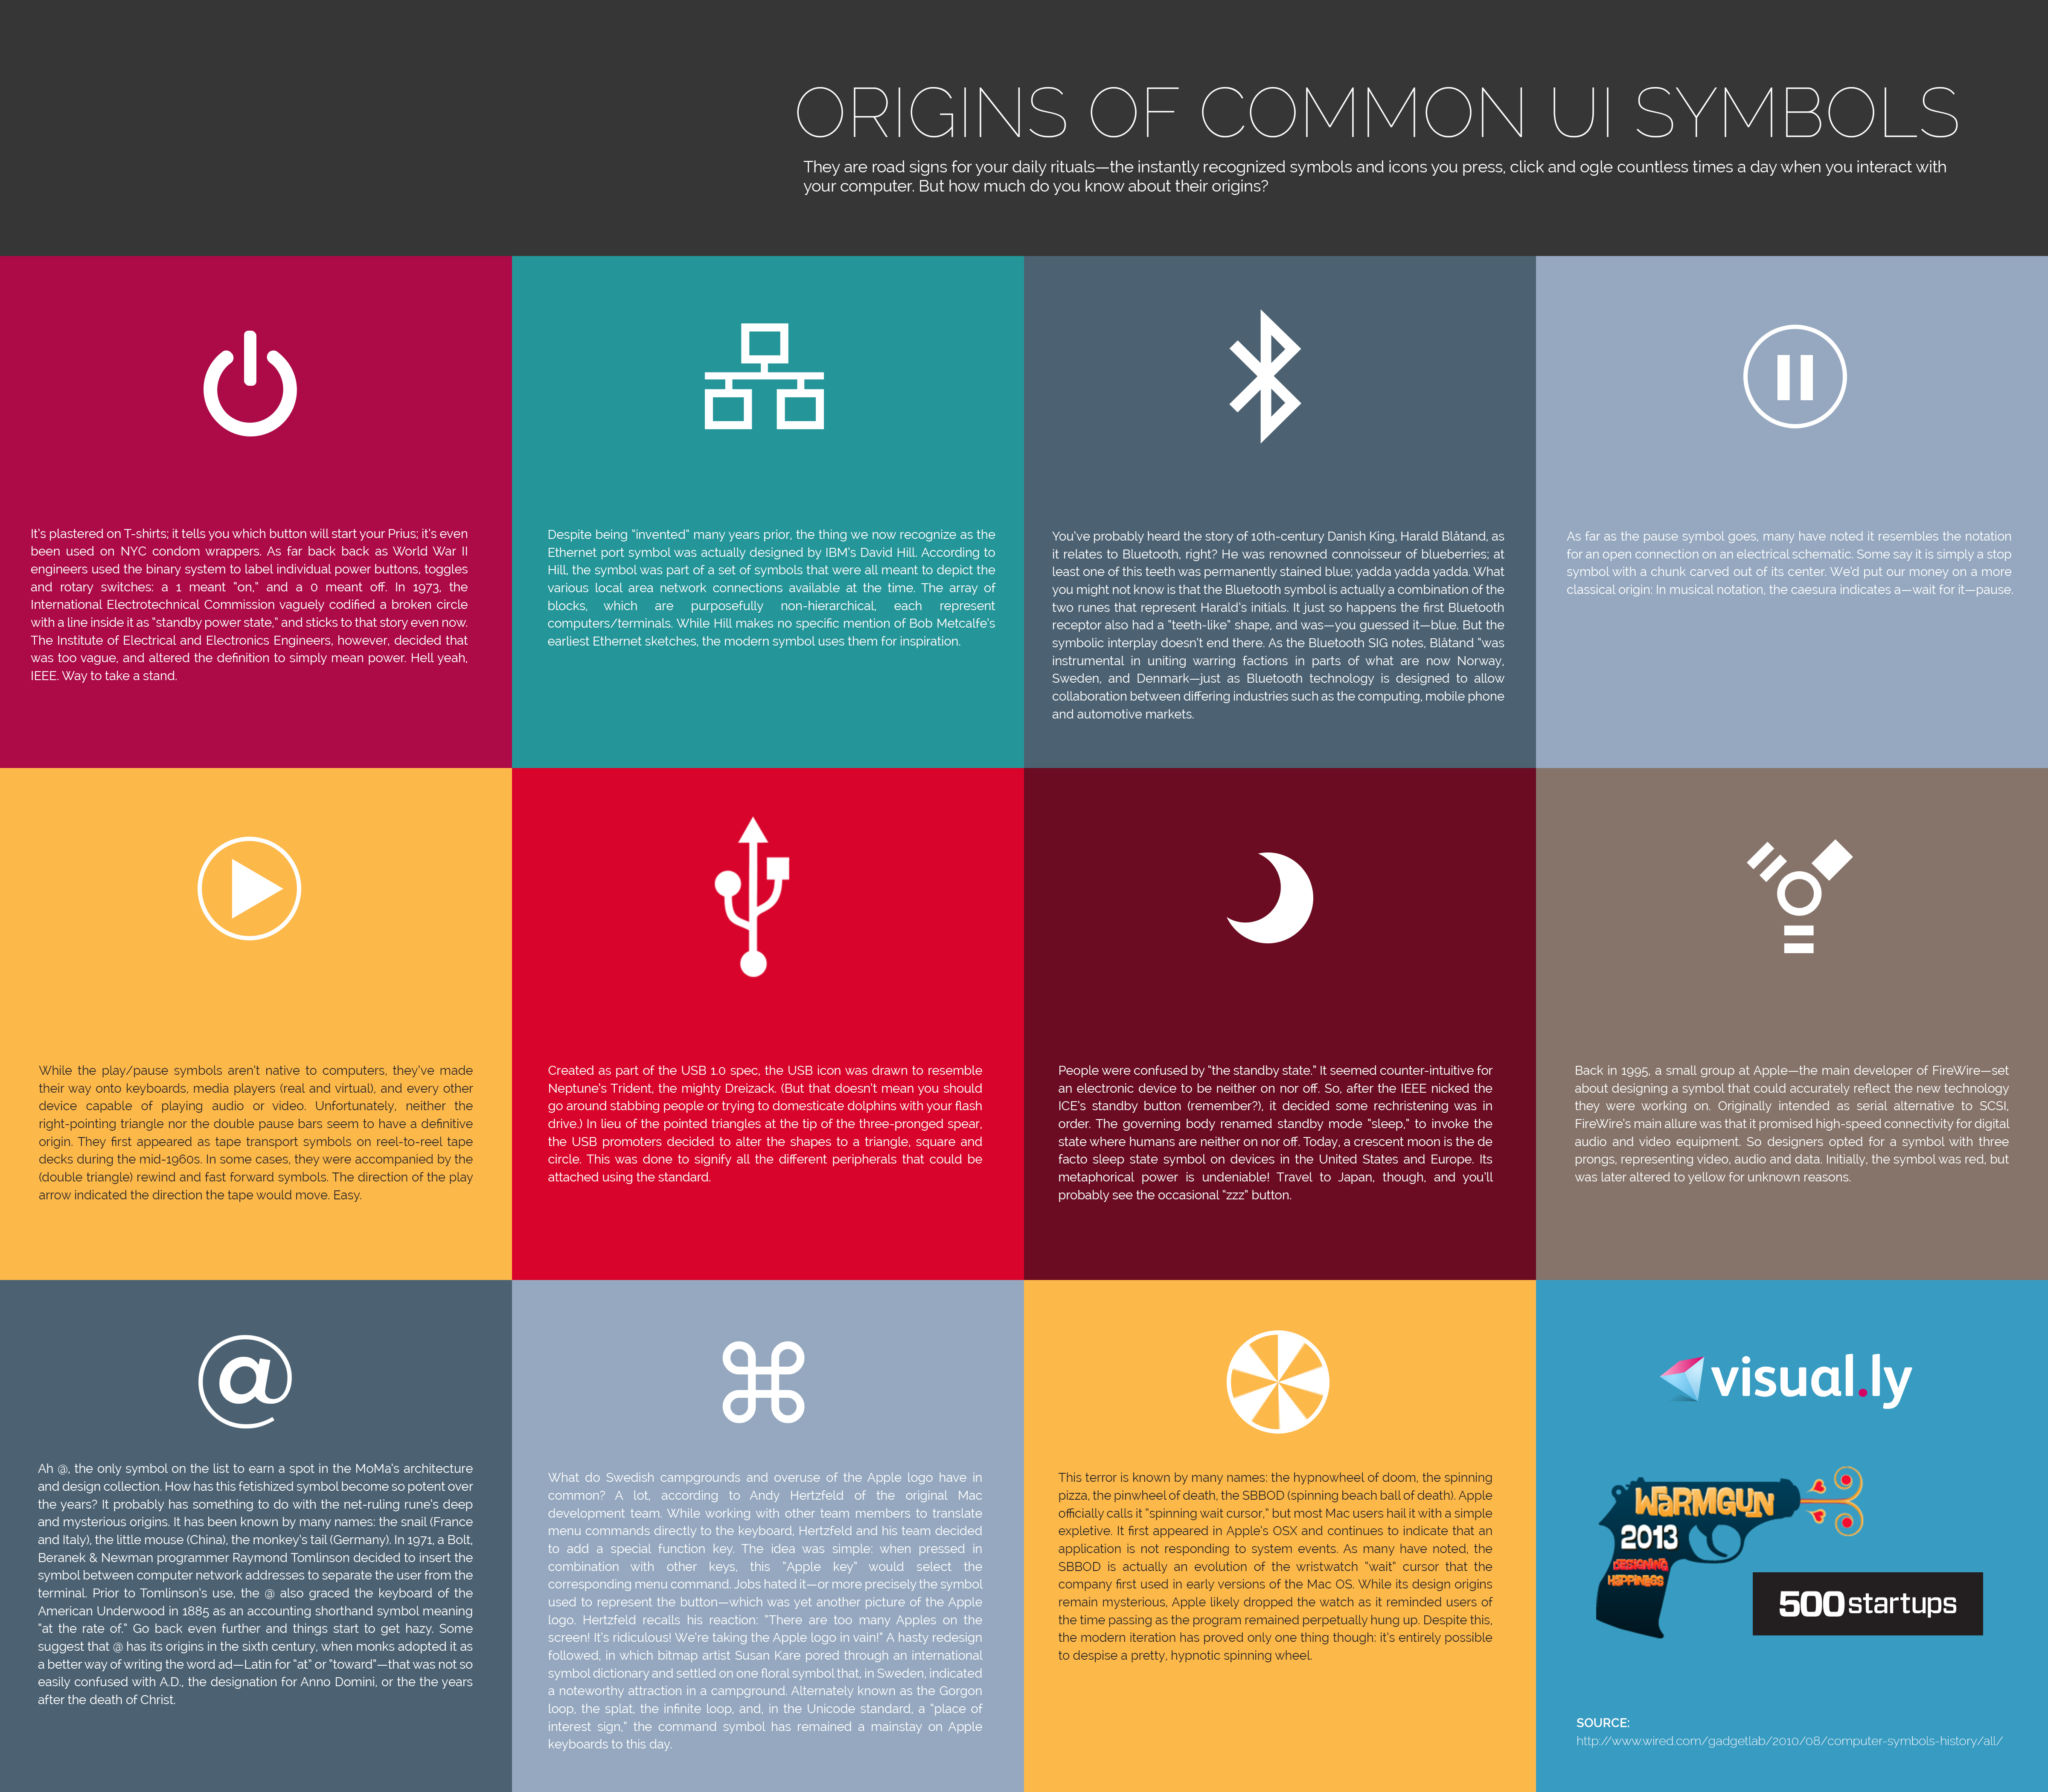 Origins Of Common Symbols Infographic The Story Of Information